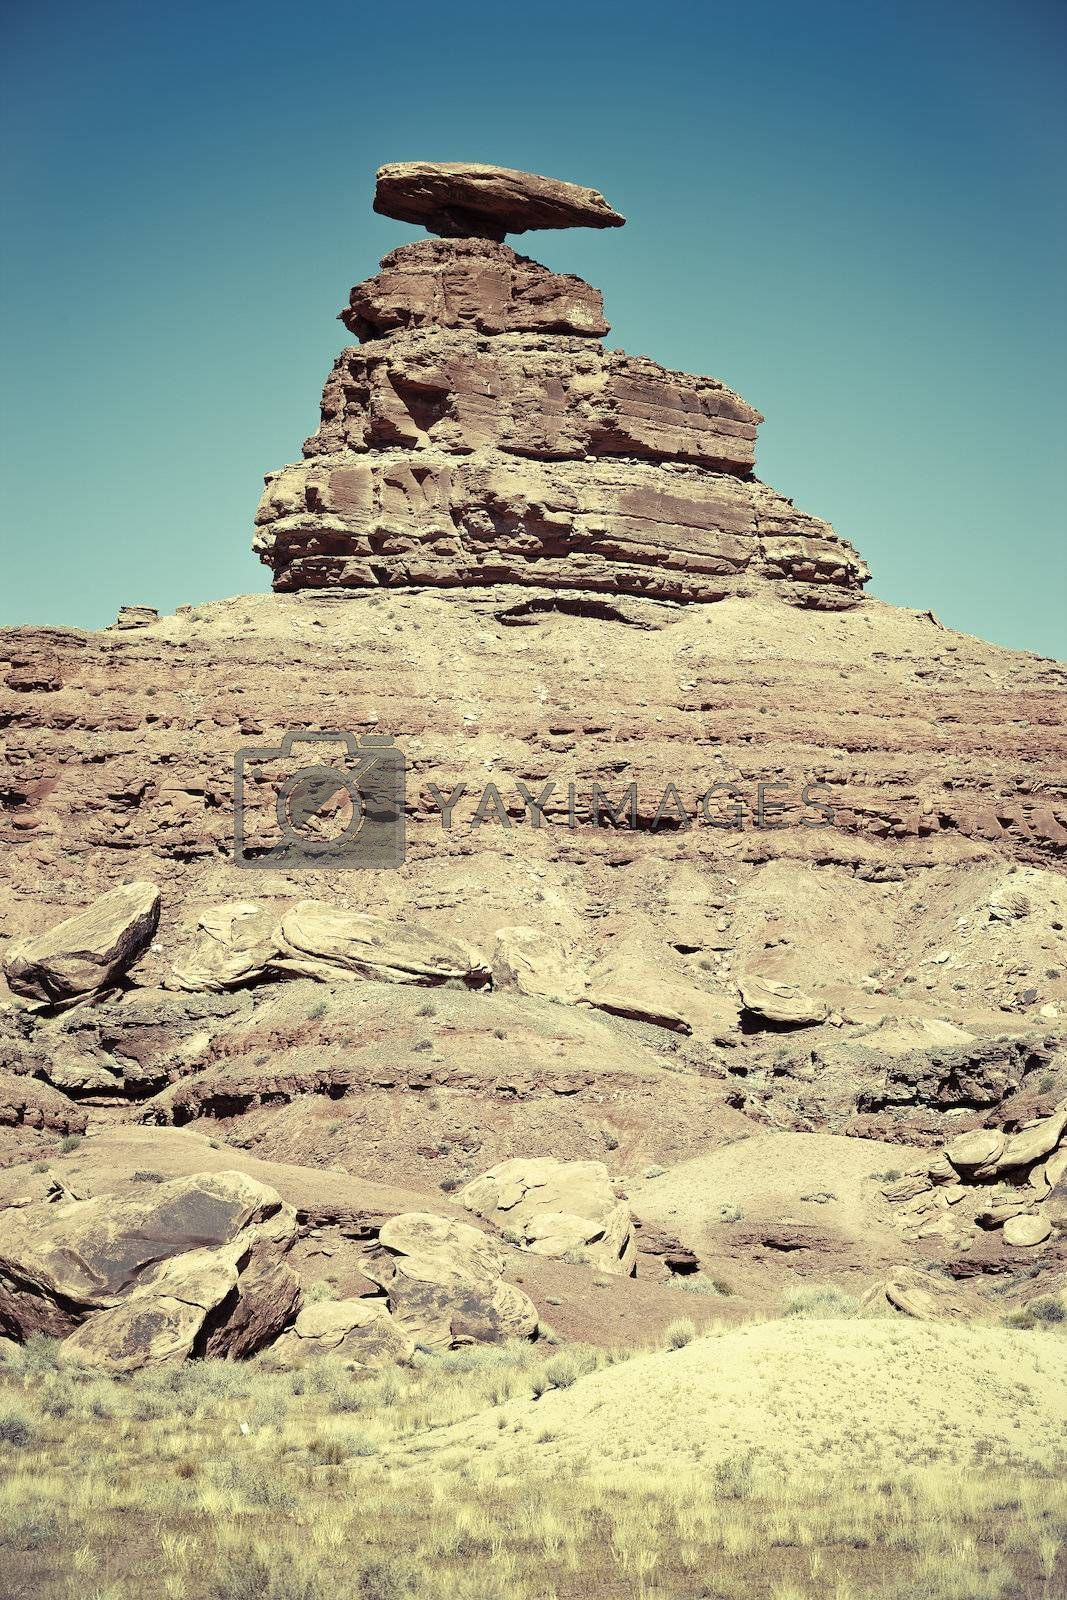 Royalty free image of The Mexican Hat rock formation by vwalakte